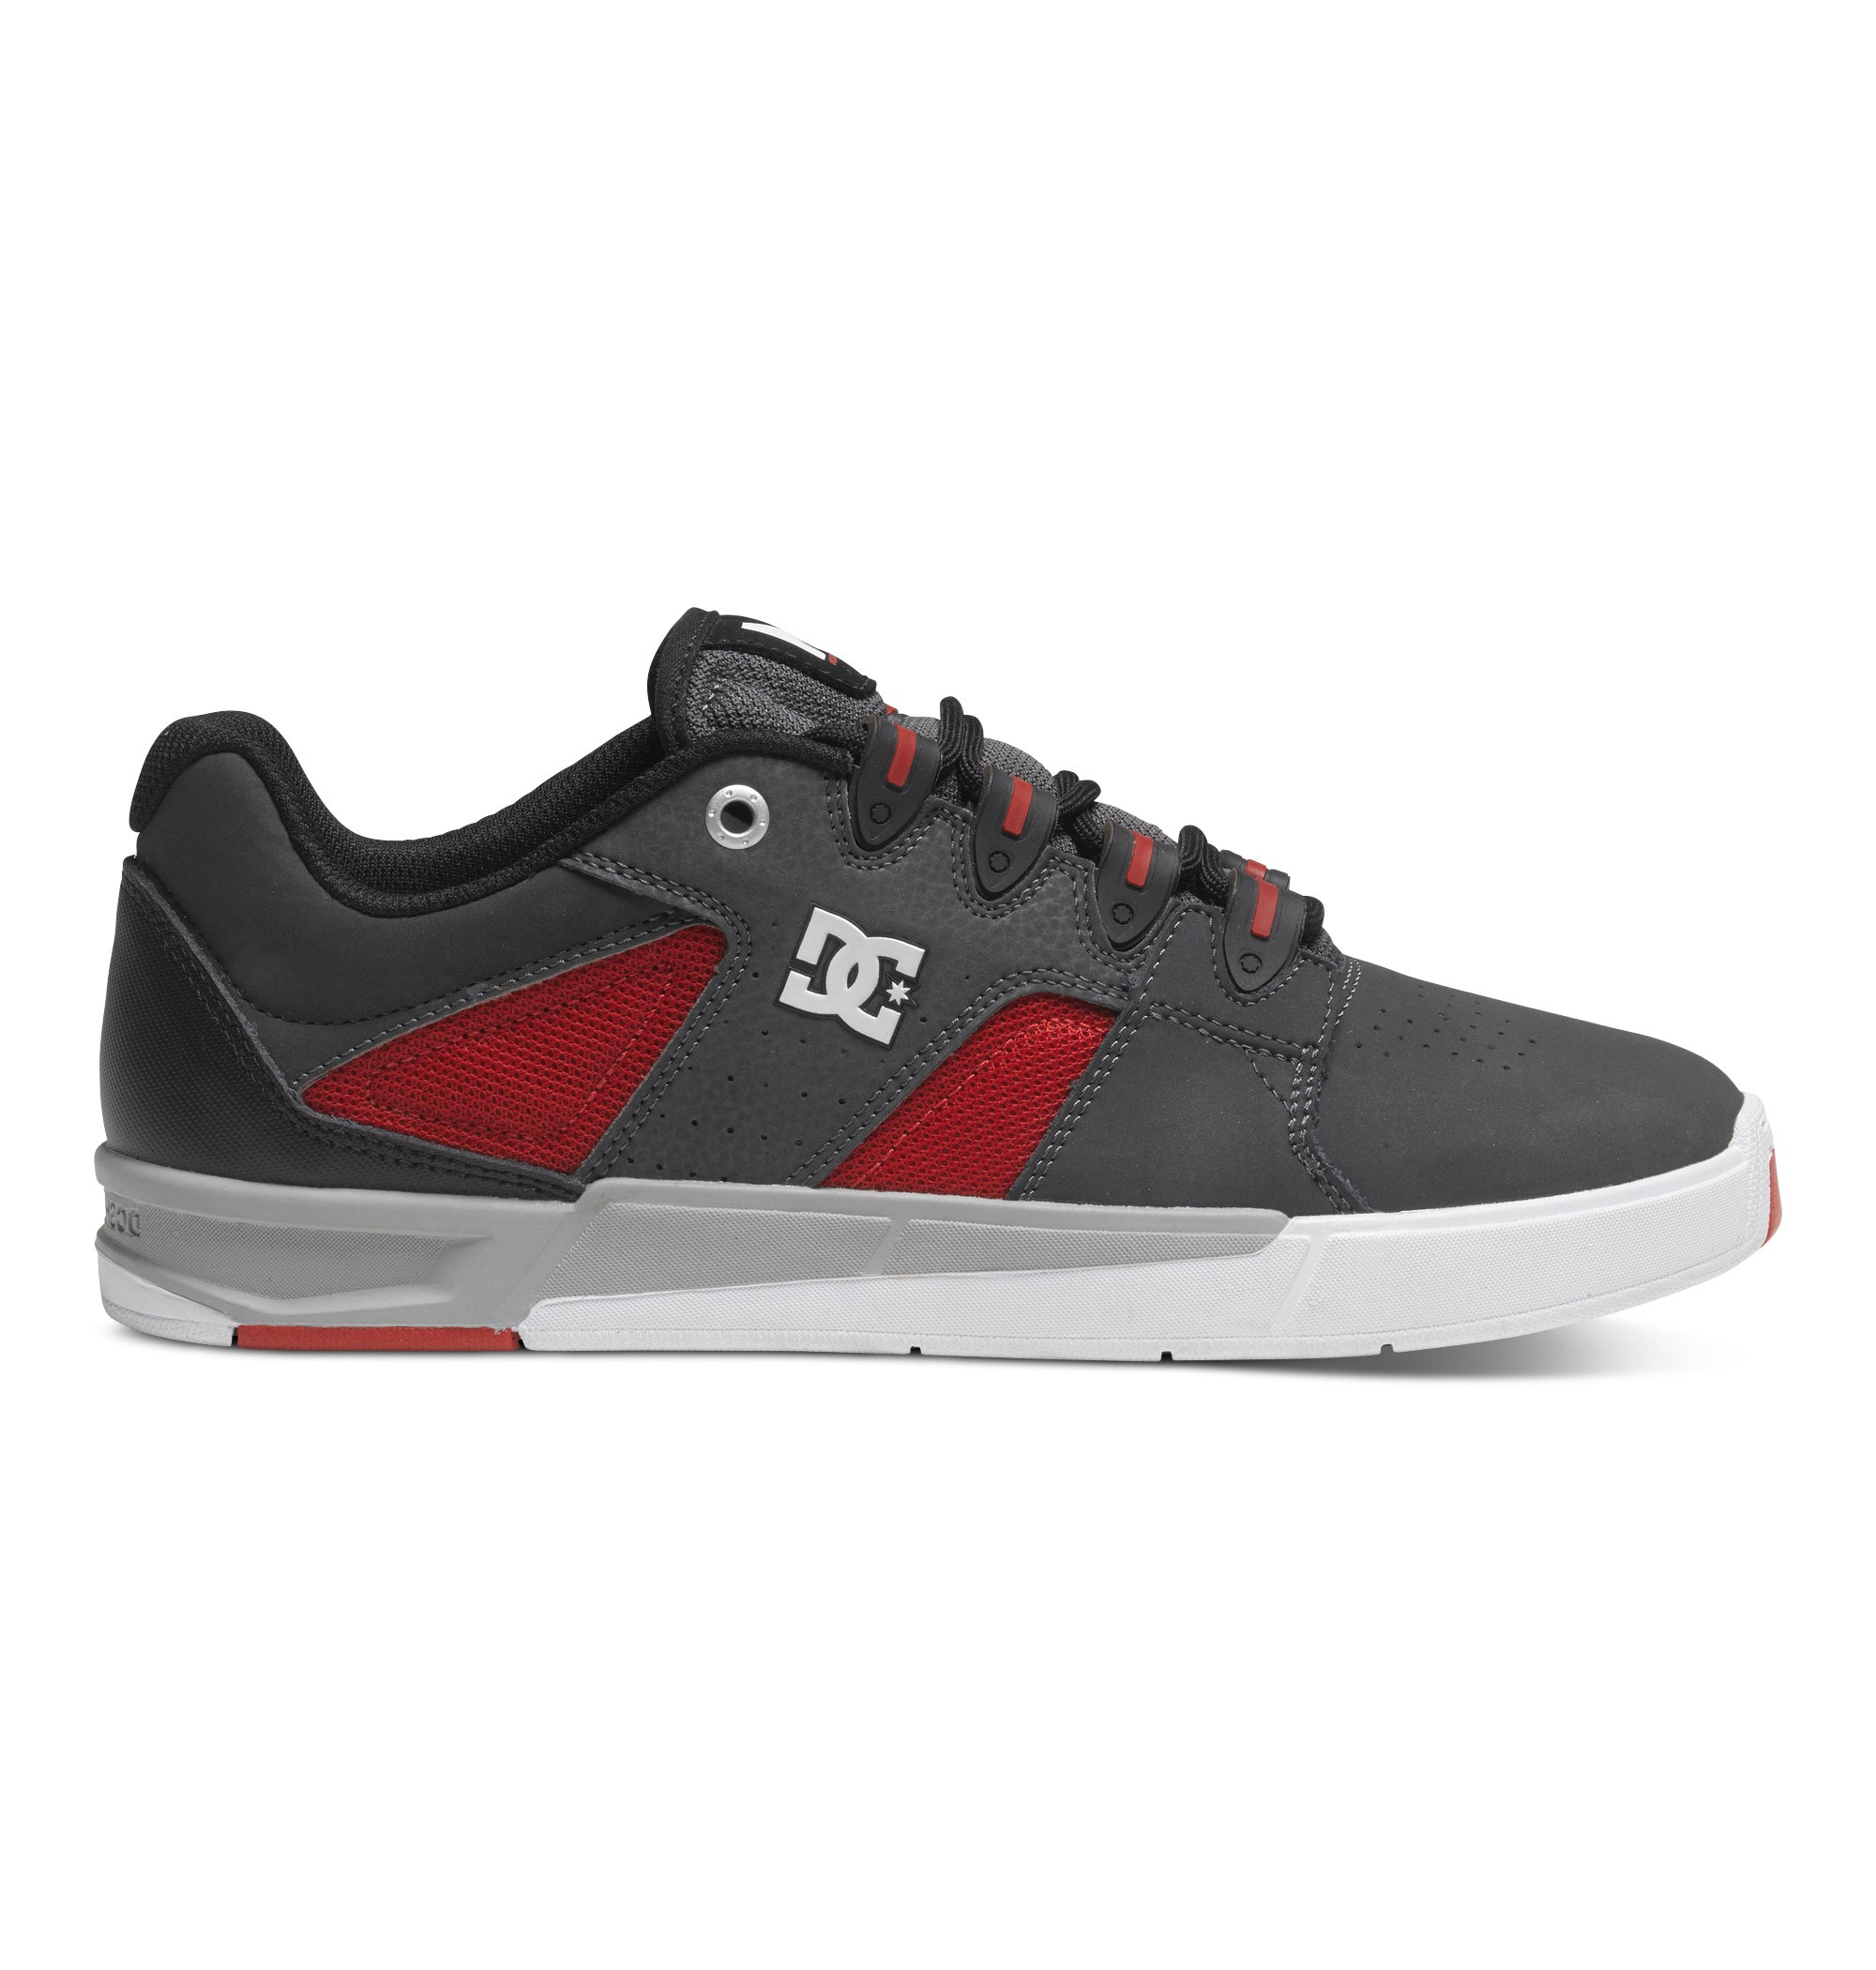 Win16 DC SHOES MADDO SHOES - Footwear